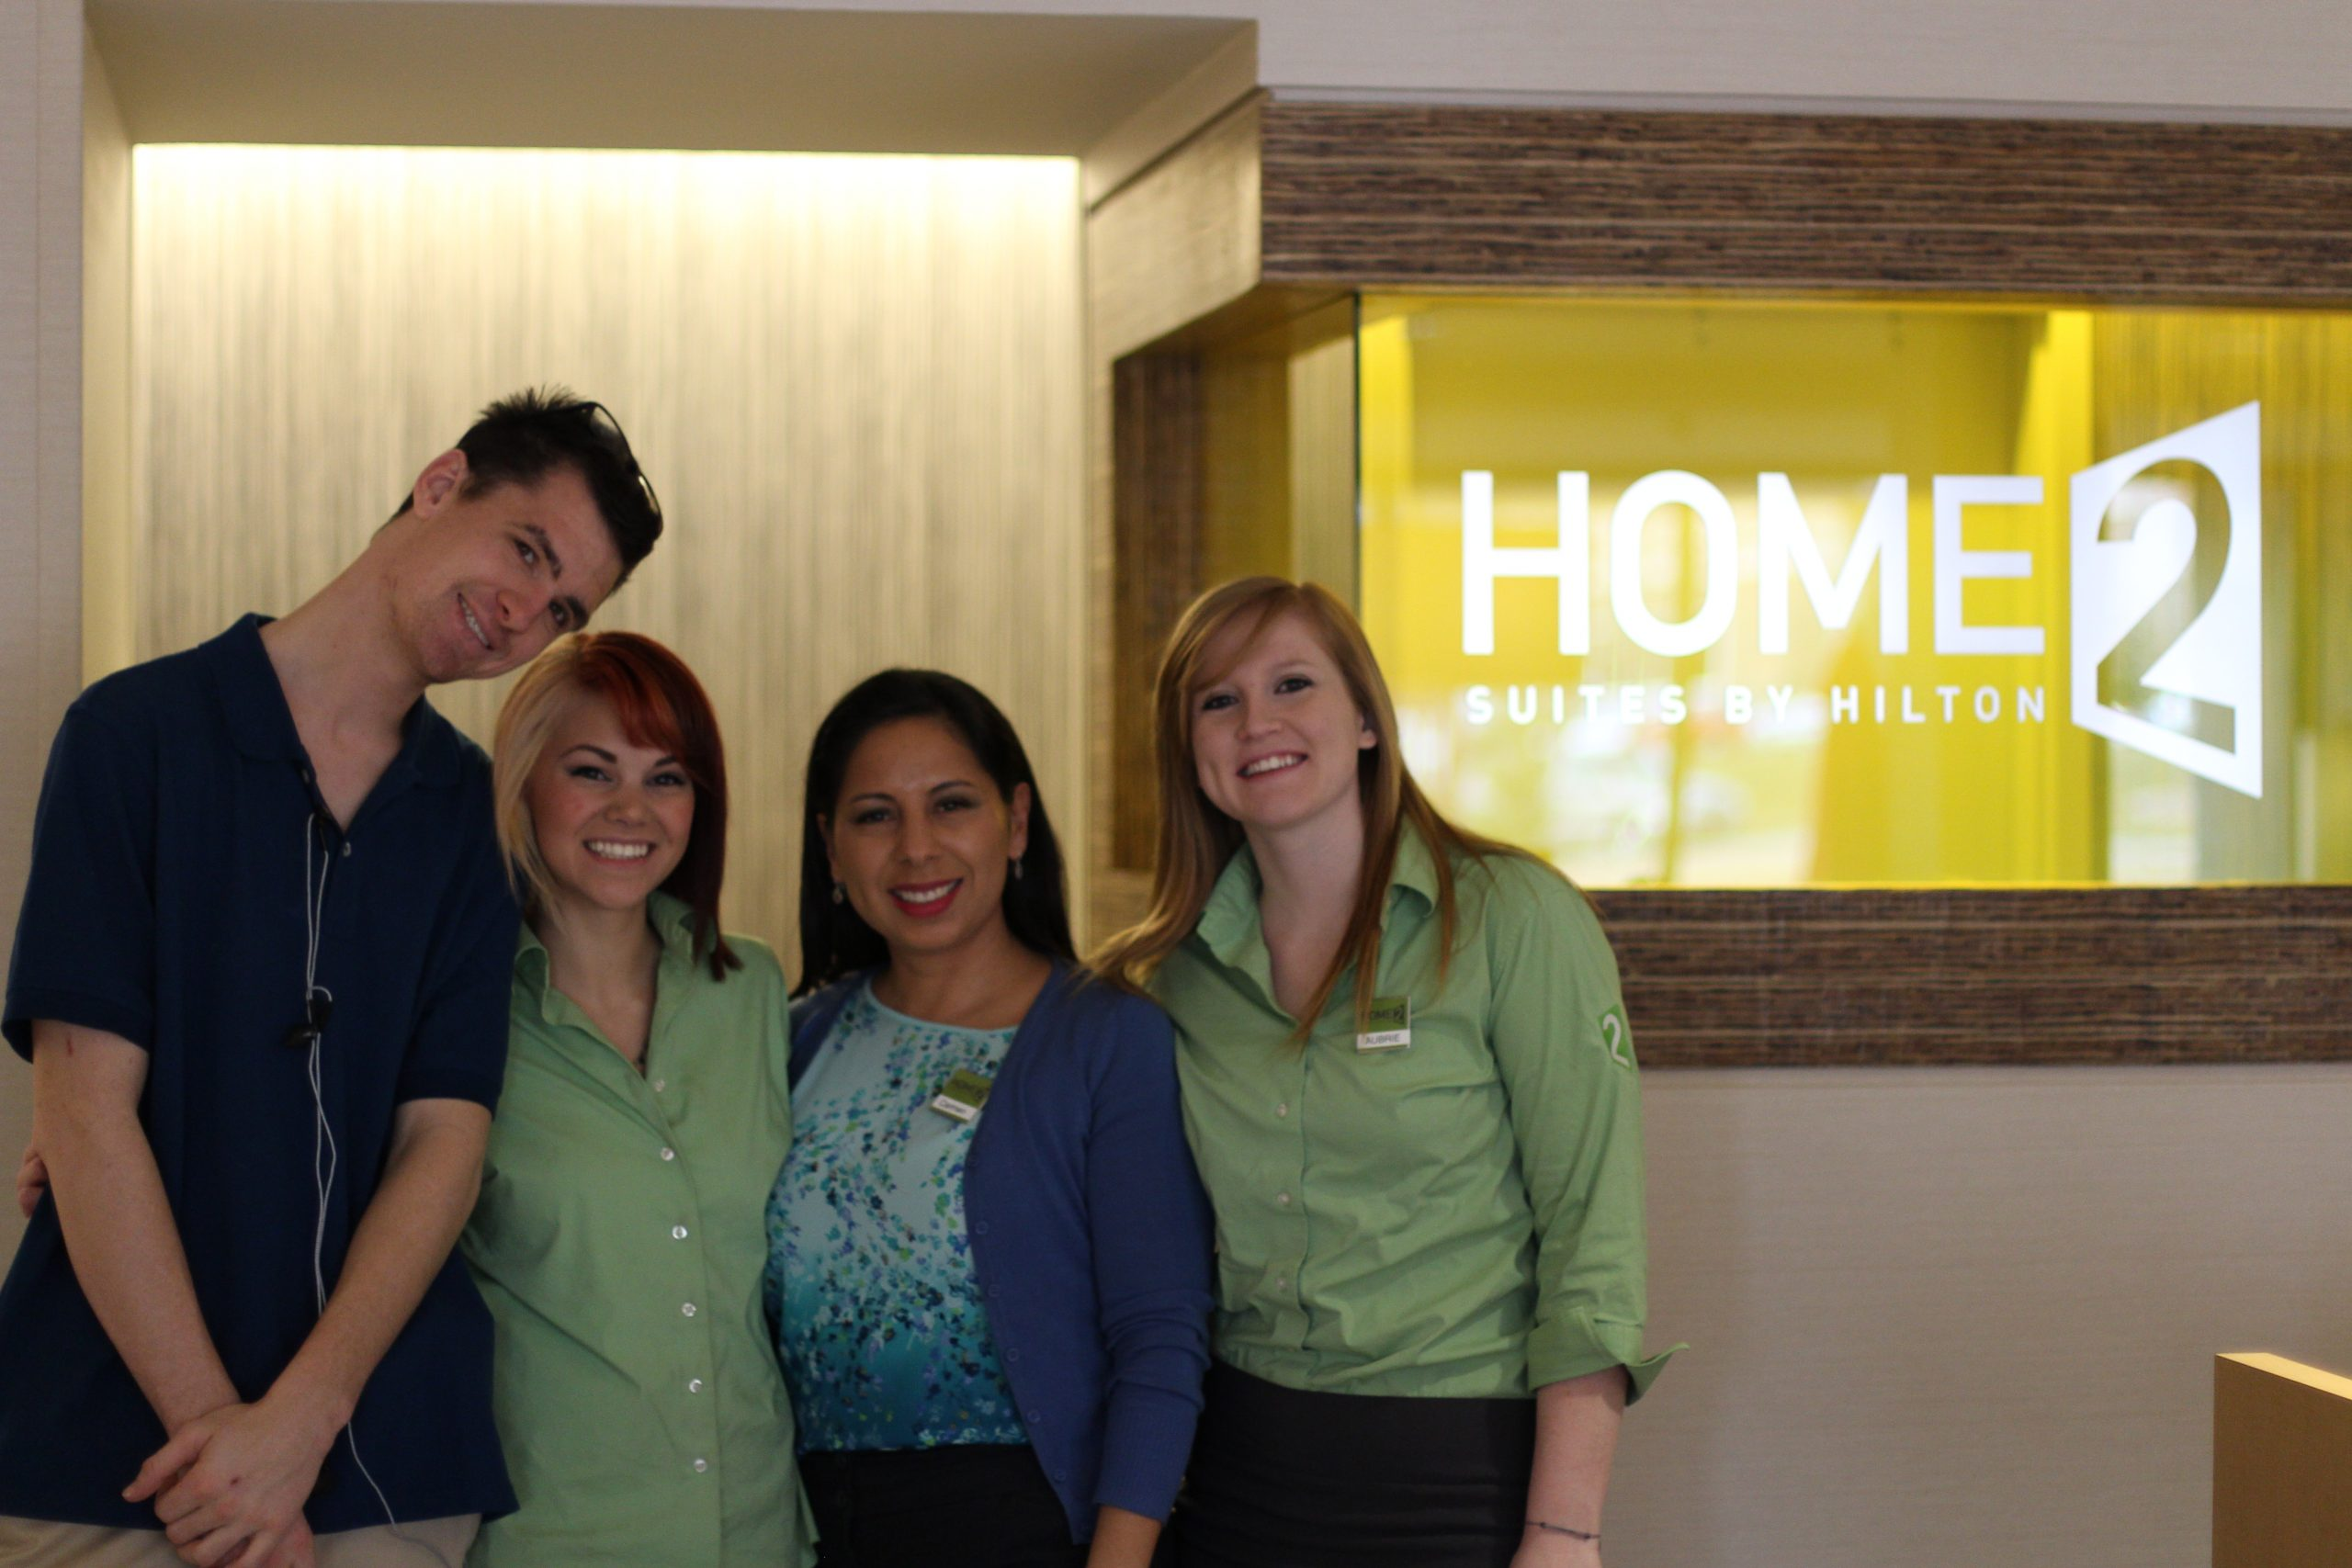 Home2 Suites Hilton Making A Difference